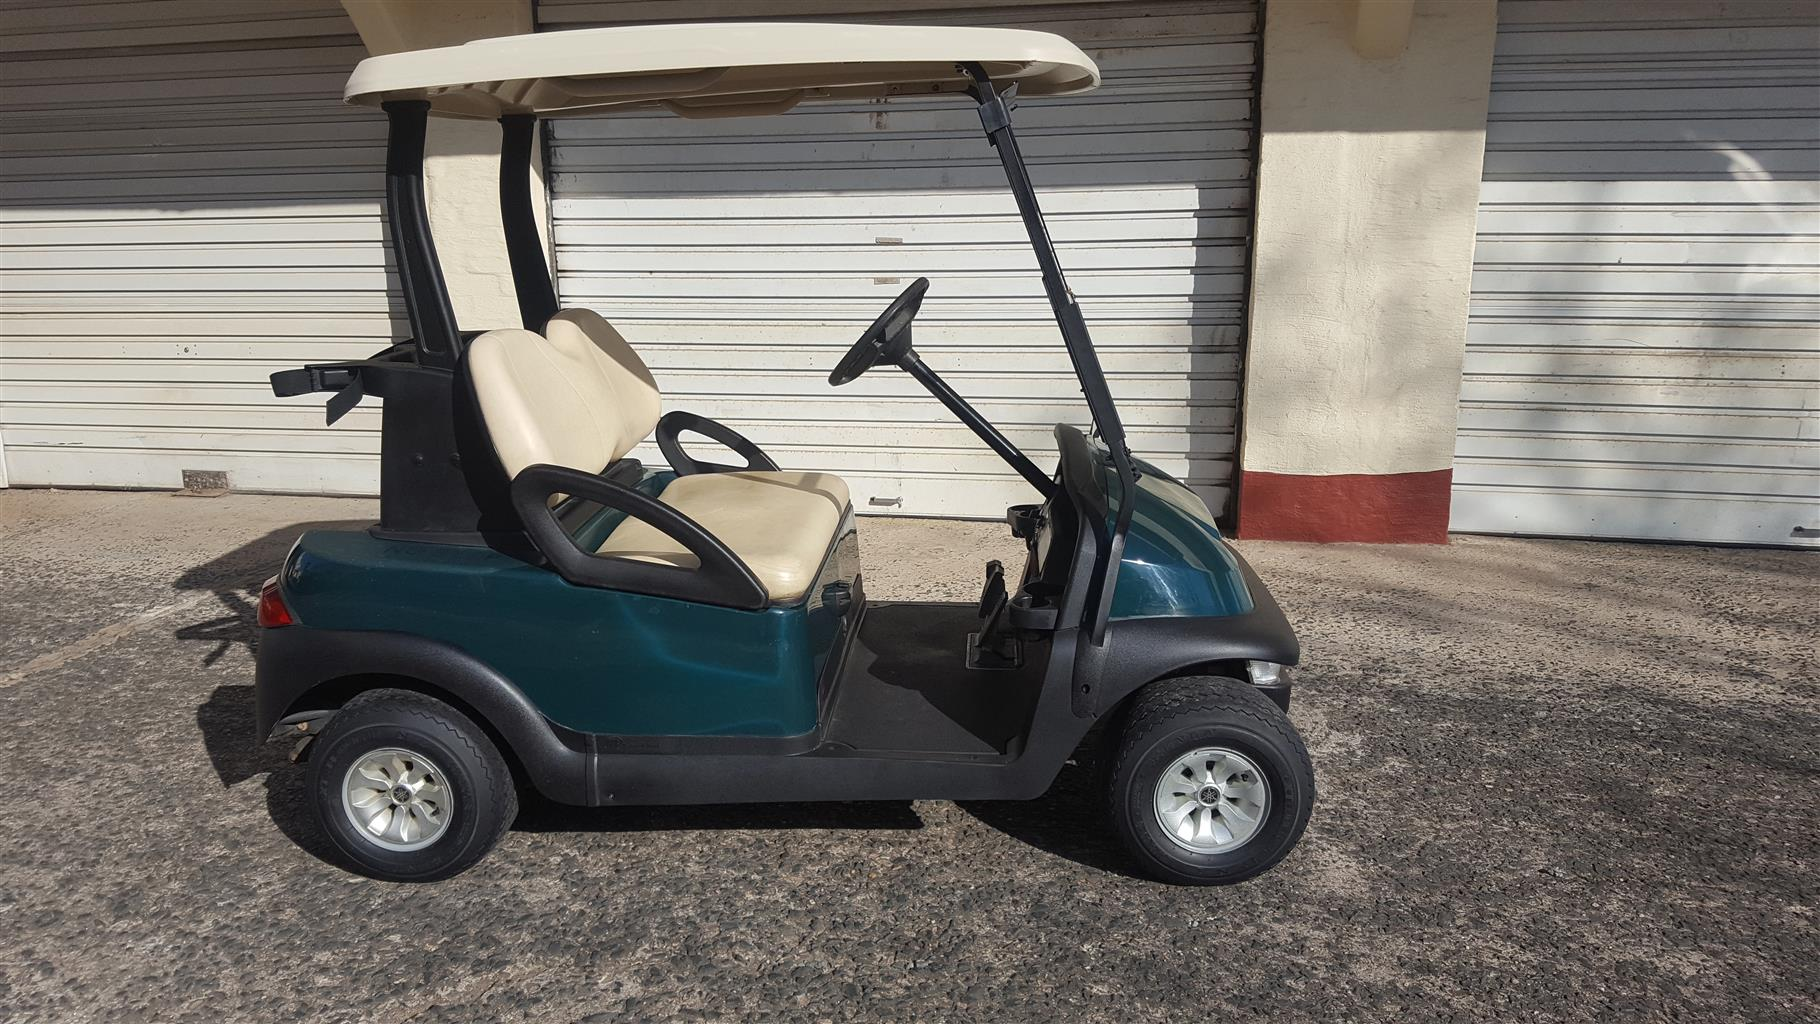 Golf Cart Club Cart 48v Electric, this is the best value for money How Much Money Is A Golf Cart on how much is atv, 2015 yamaha golf cart, used street-legal golf cart, wooden golf cart, batman golf cart, 2006 yamaha golf cart, mini golf cart, flying golf cart, lifted ezgo golf cart, car golf cart, walking golf cart, trick out your golf cart, zone electric golf cart, best off-road golf cart, back of golf cart, old truck golf cart, how much is taxes, white golf cart, hoover golf cart, 48 volt golf cart,